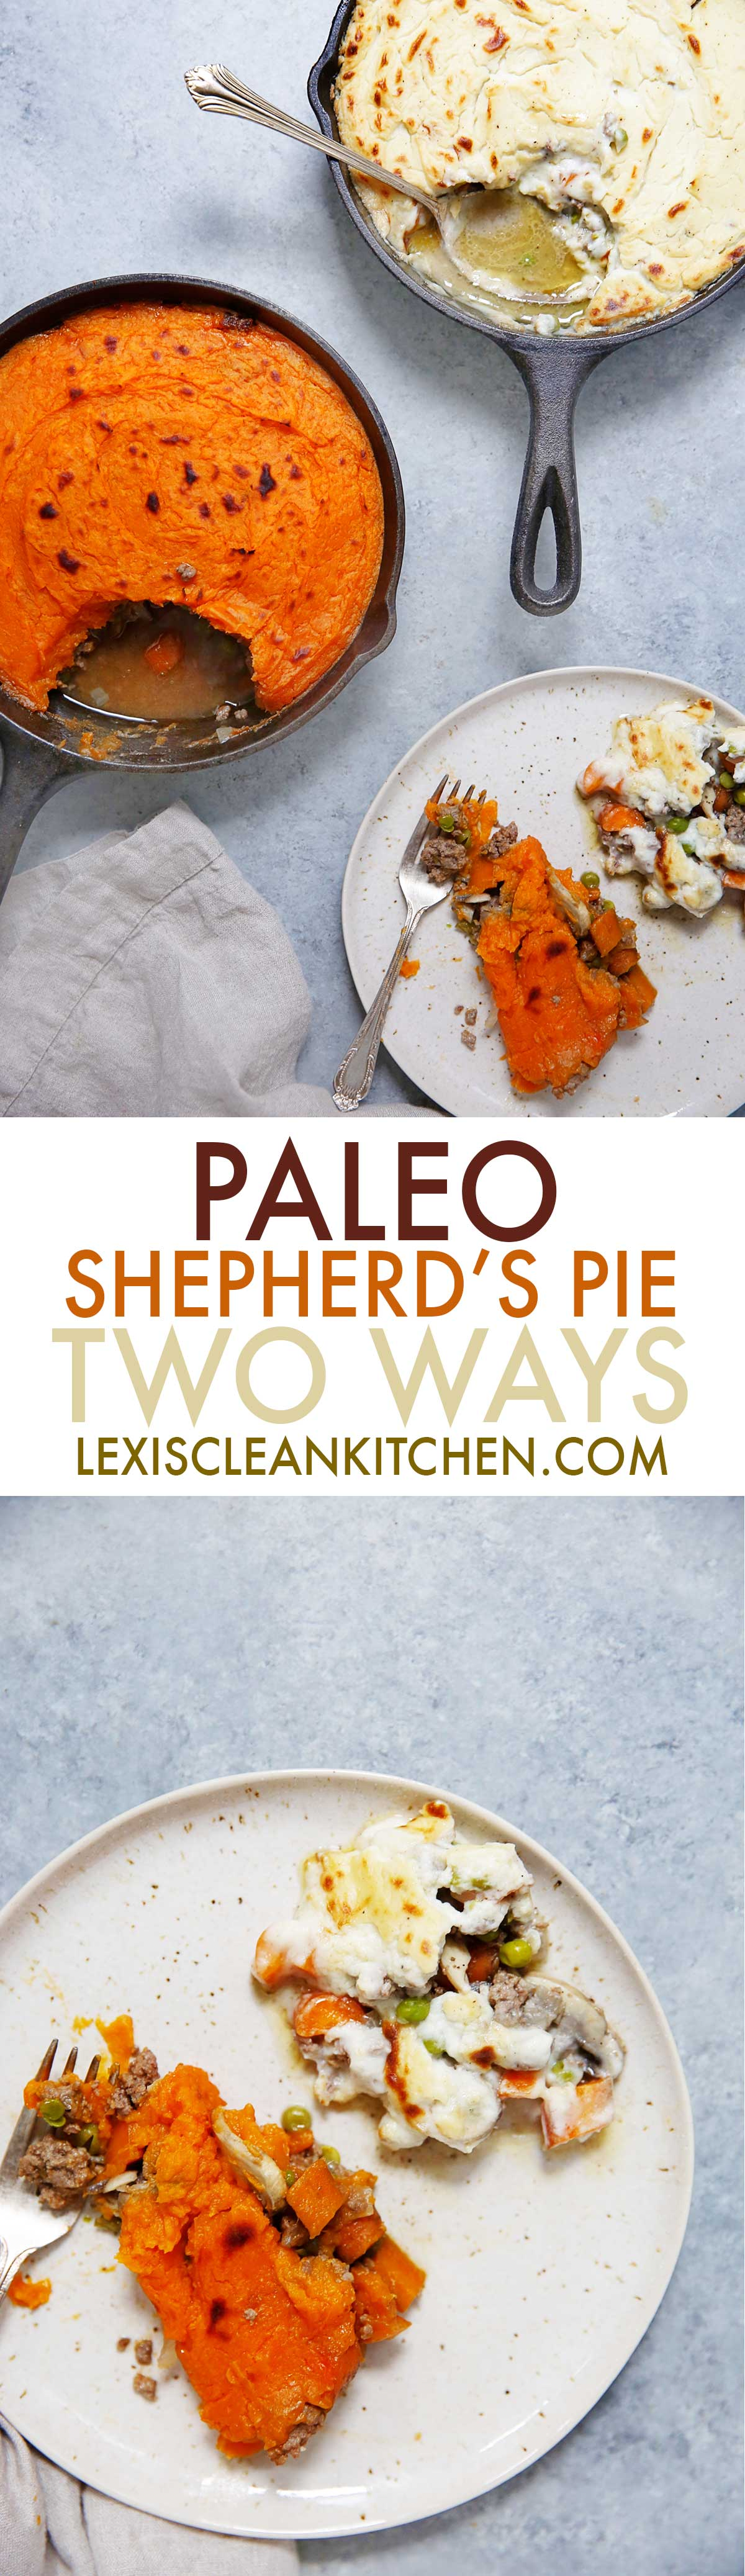 Paleo Shepherds Pie Two Ways | Lexi's Clean KItchen